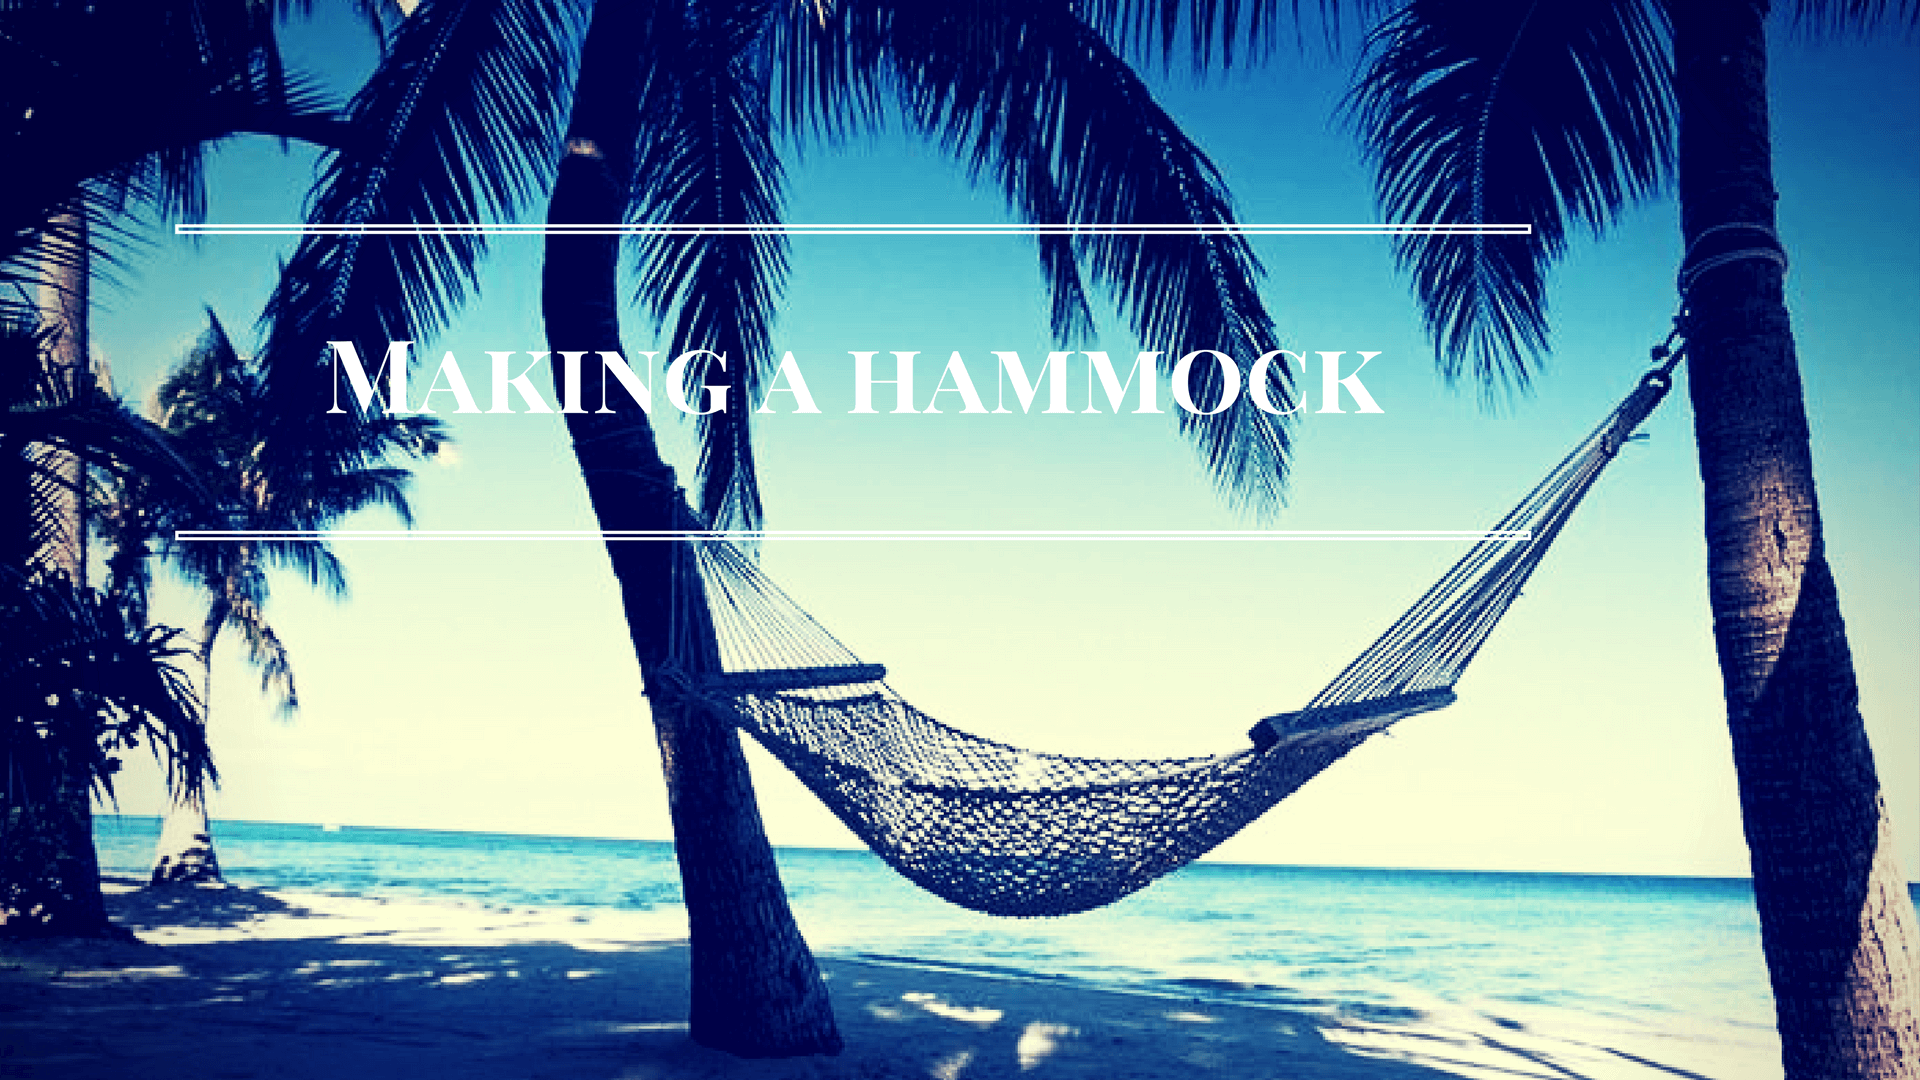 Making a hammock